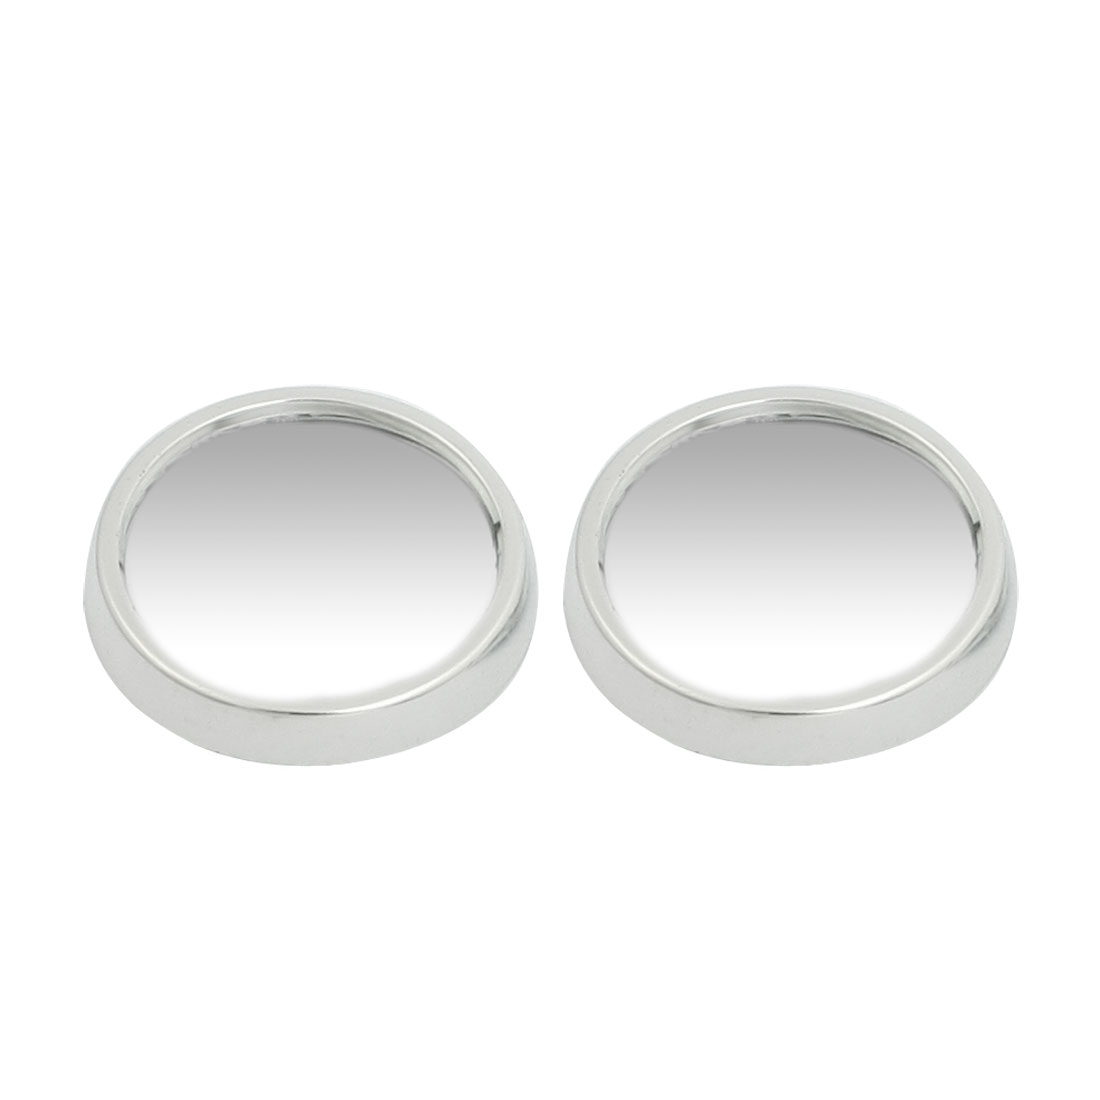 2 Pcs Car Side Rearview Convex Rear View Spot Blind Mirror Silver Tone 47mm